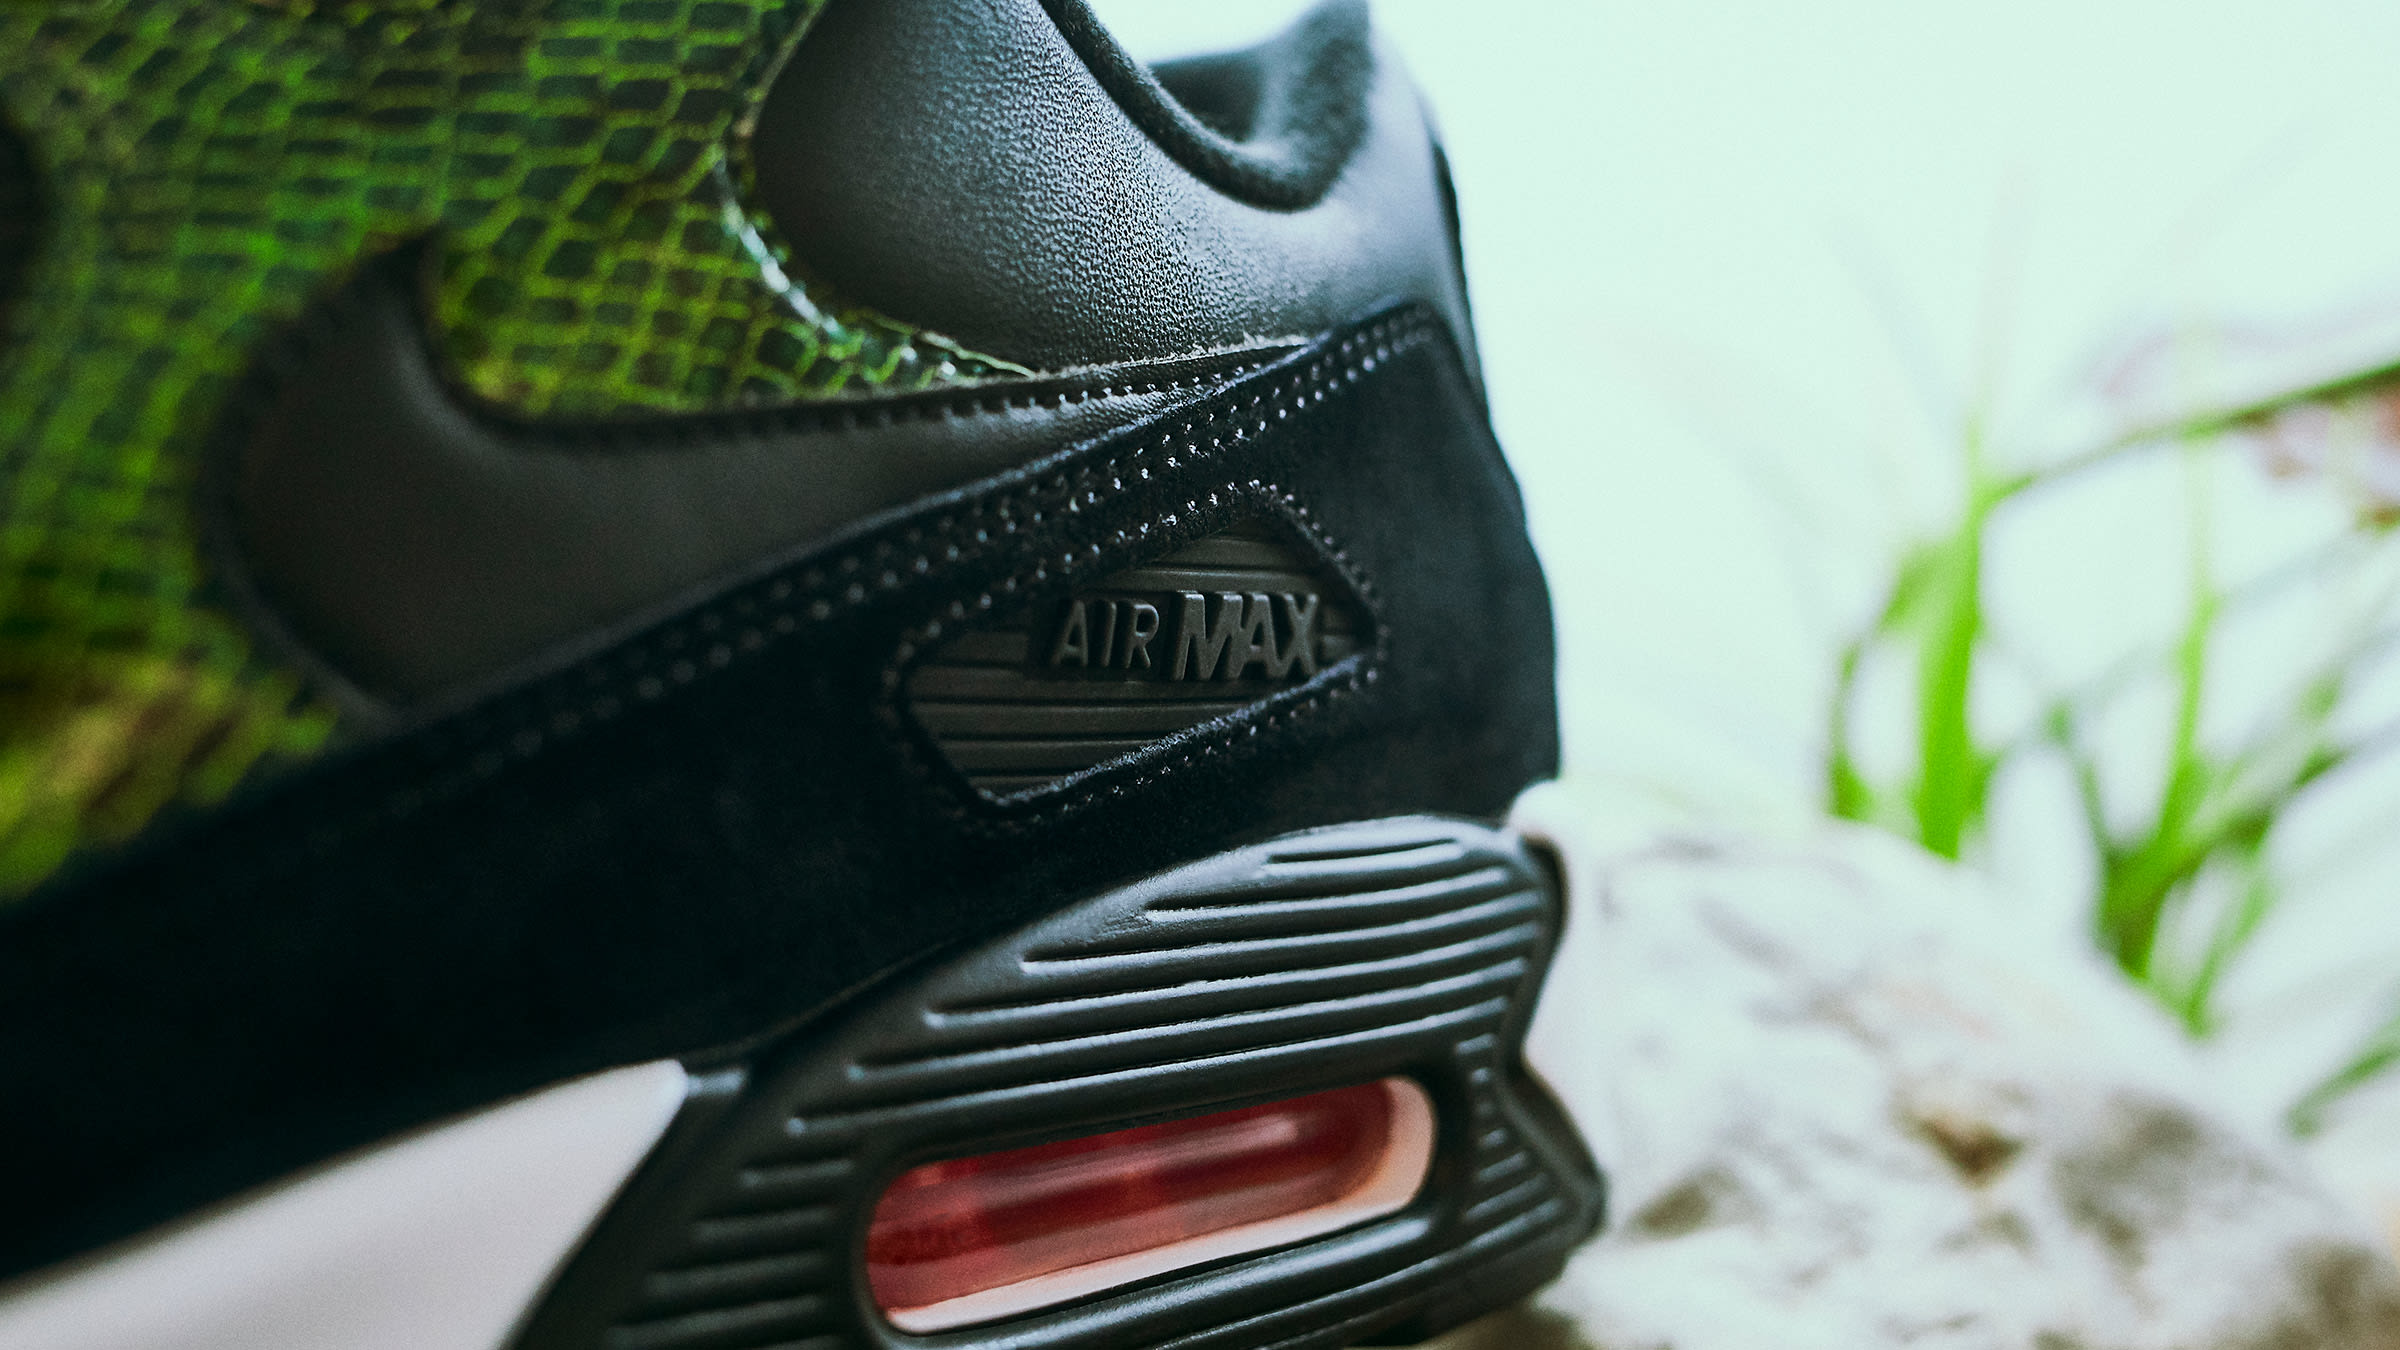 9b3a62774c Returning with an exotic twist this season, one of Nike's most iconic  silhouettes – the Air Max 90 – arrives in a solid black and cyber green  design.